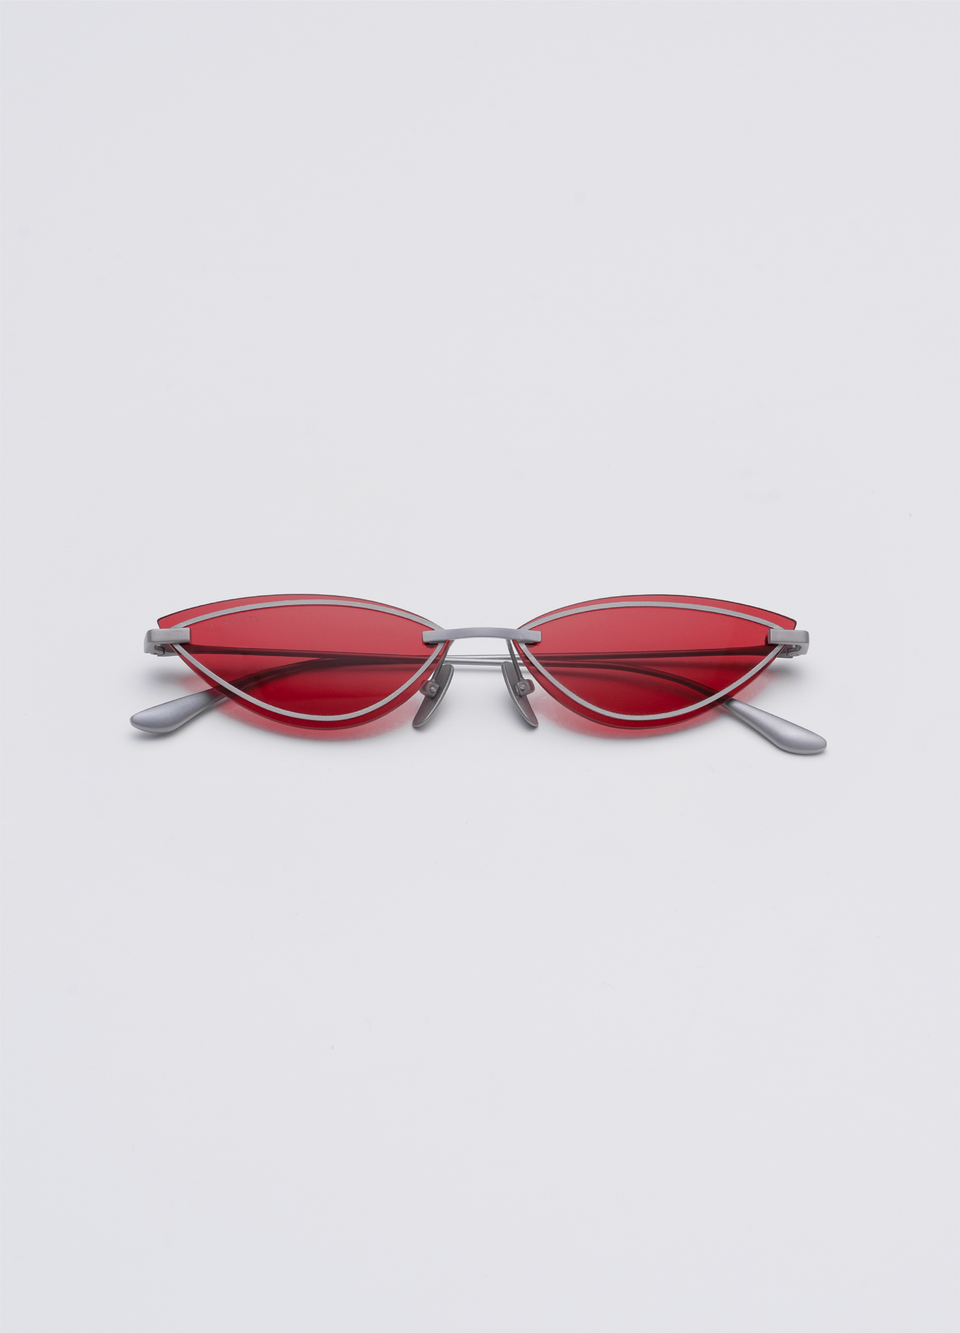 A SOCIETY LOLA - Red Titanium Cat-Eye Sunglasses Front